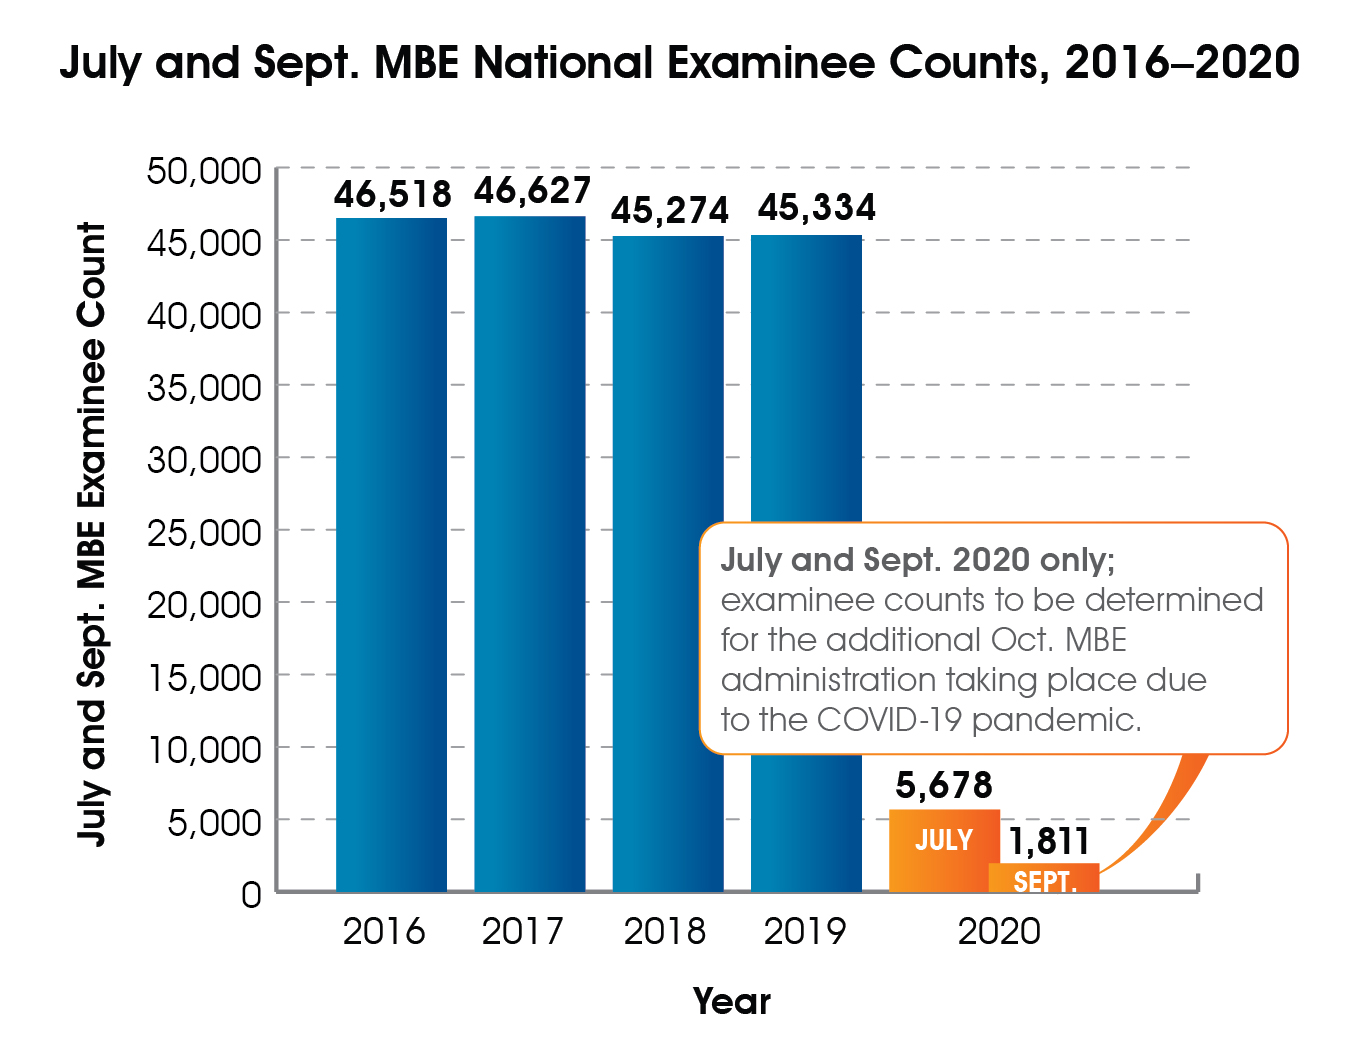 Bar graph of July MBE national examinee counts, 2016-2020. 2016 = 46,518; 2017 = 46,627; 2018 = 45,274; 2019 = 45,334; 2020 = 5,678. Examinee counts for September 2020 MBE national examinee count = 1,811 and October exams also taking place because of the COVID-19 pandemic have not been determined yet.